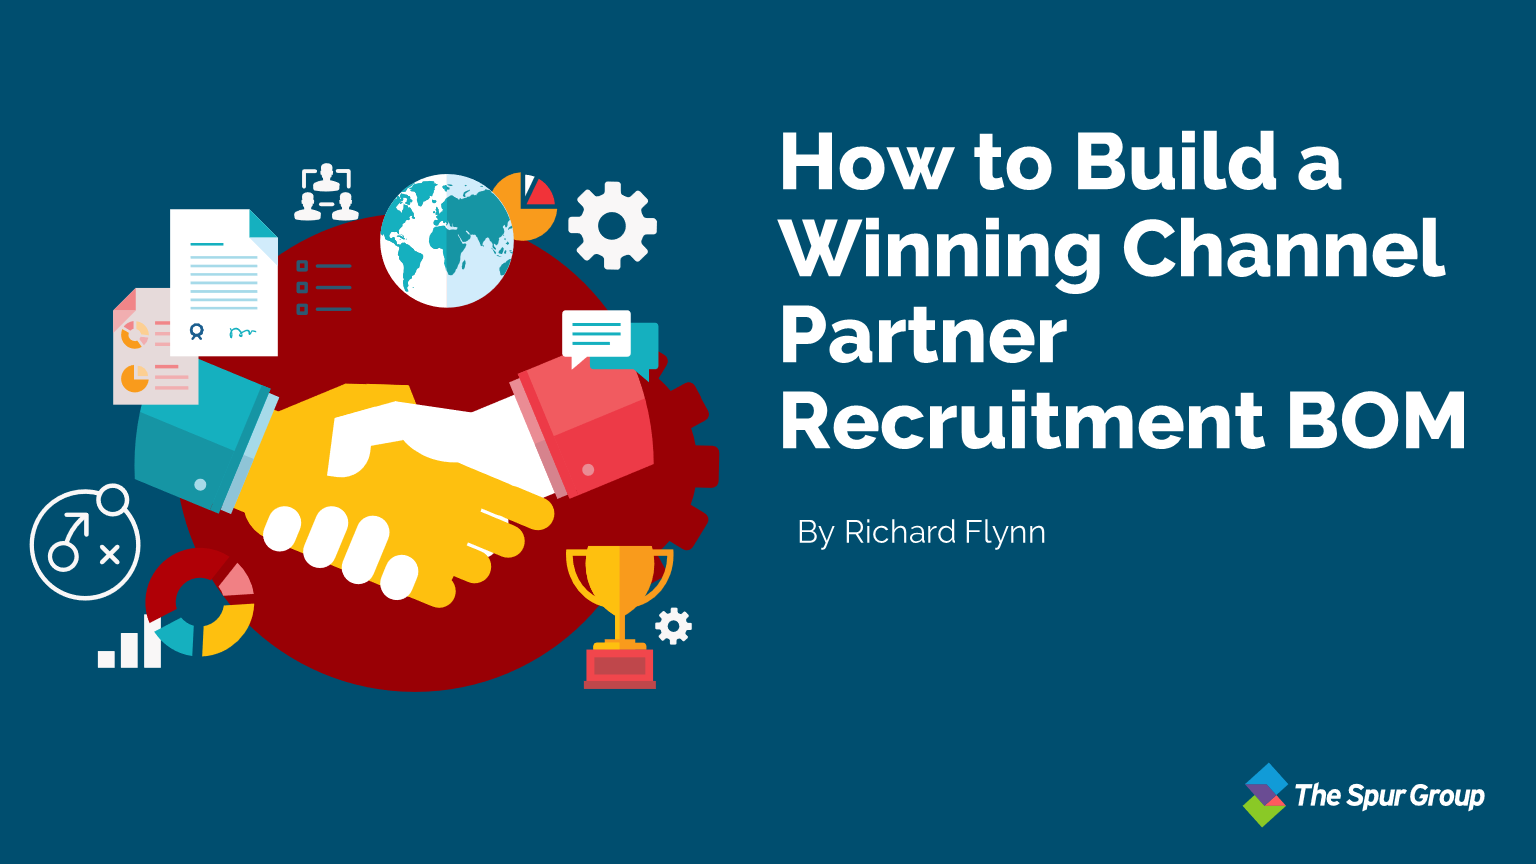 How to Build aWinning Channel Partner Recruitment BOM